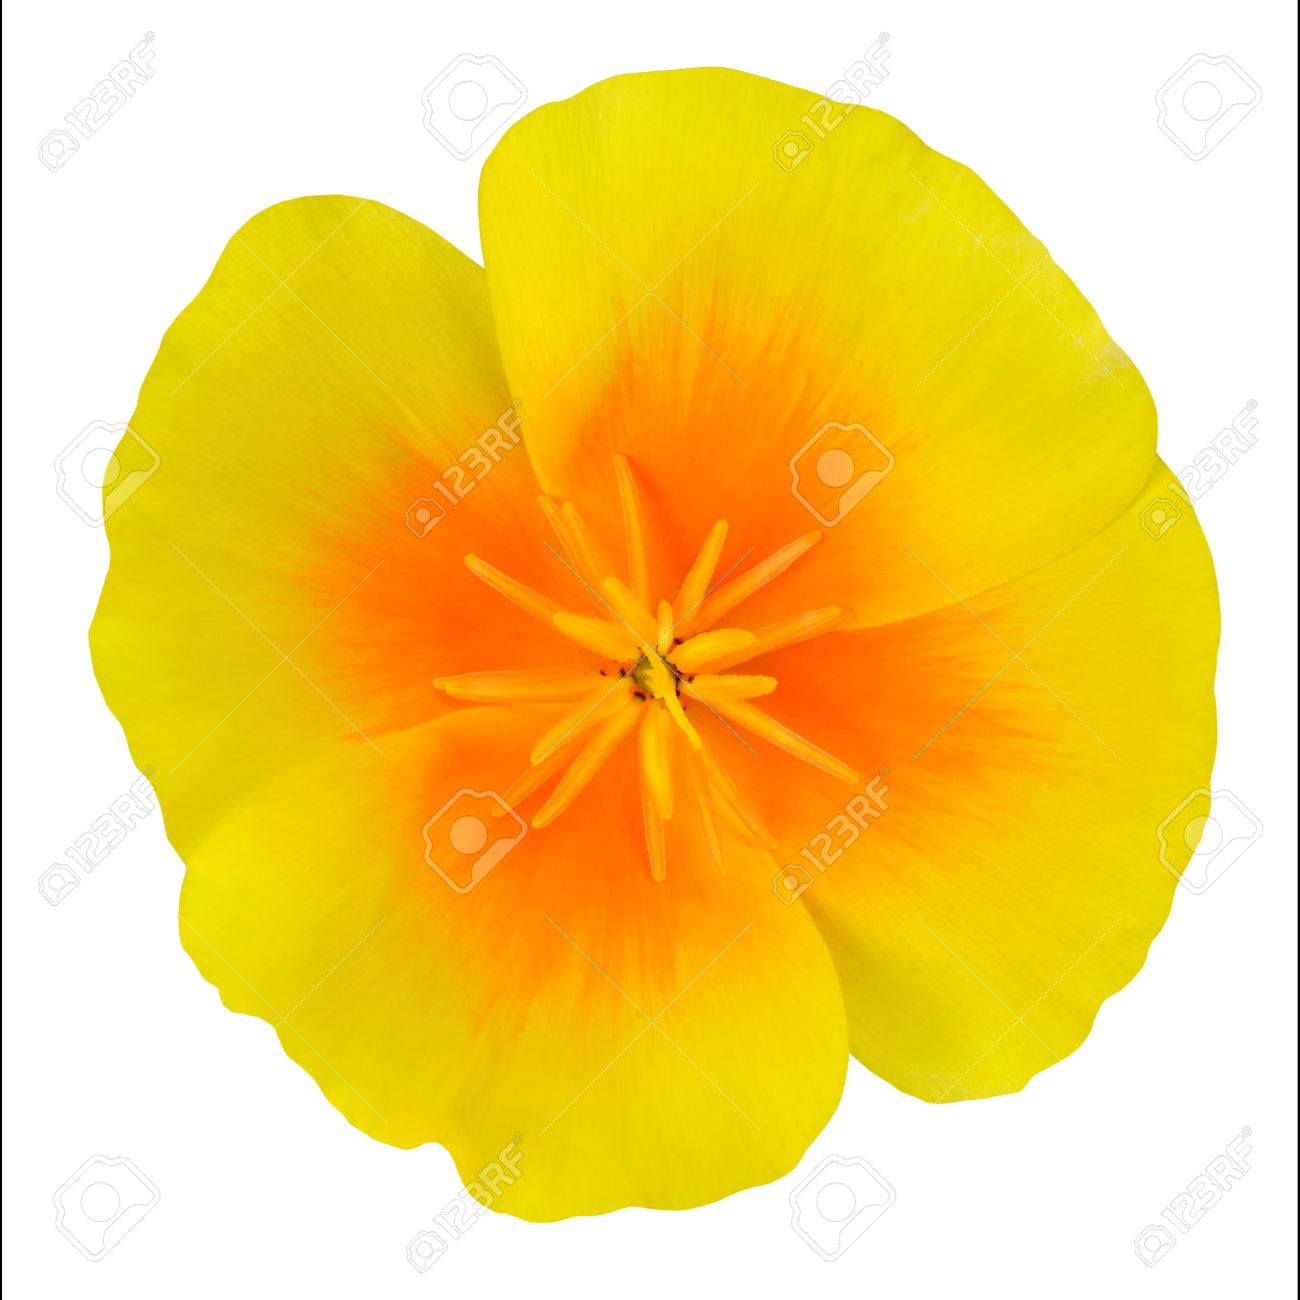 Yellow Wildflower Flower With Orange Center Isolated On White